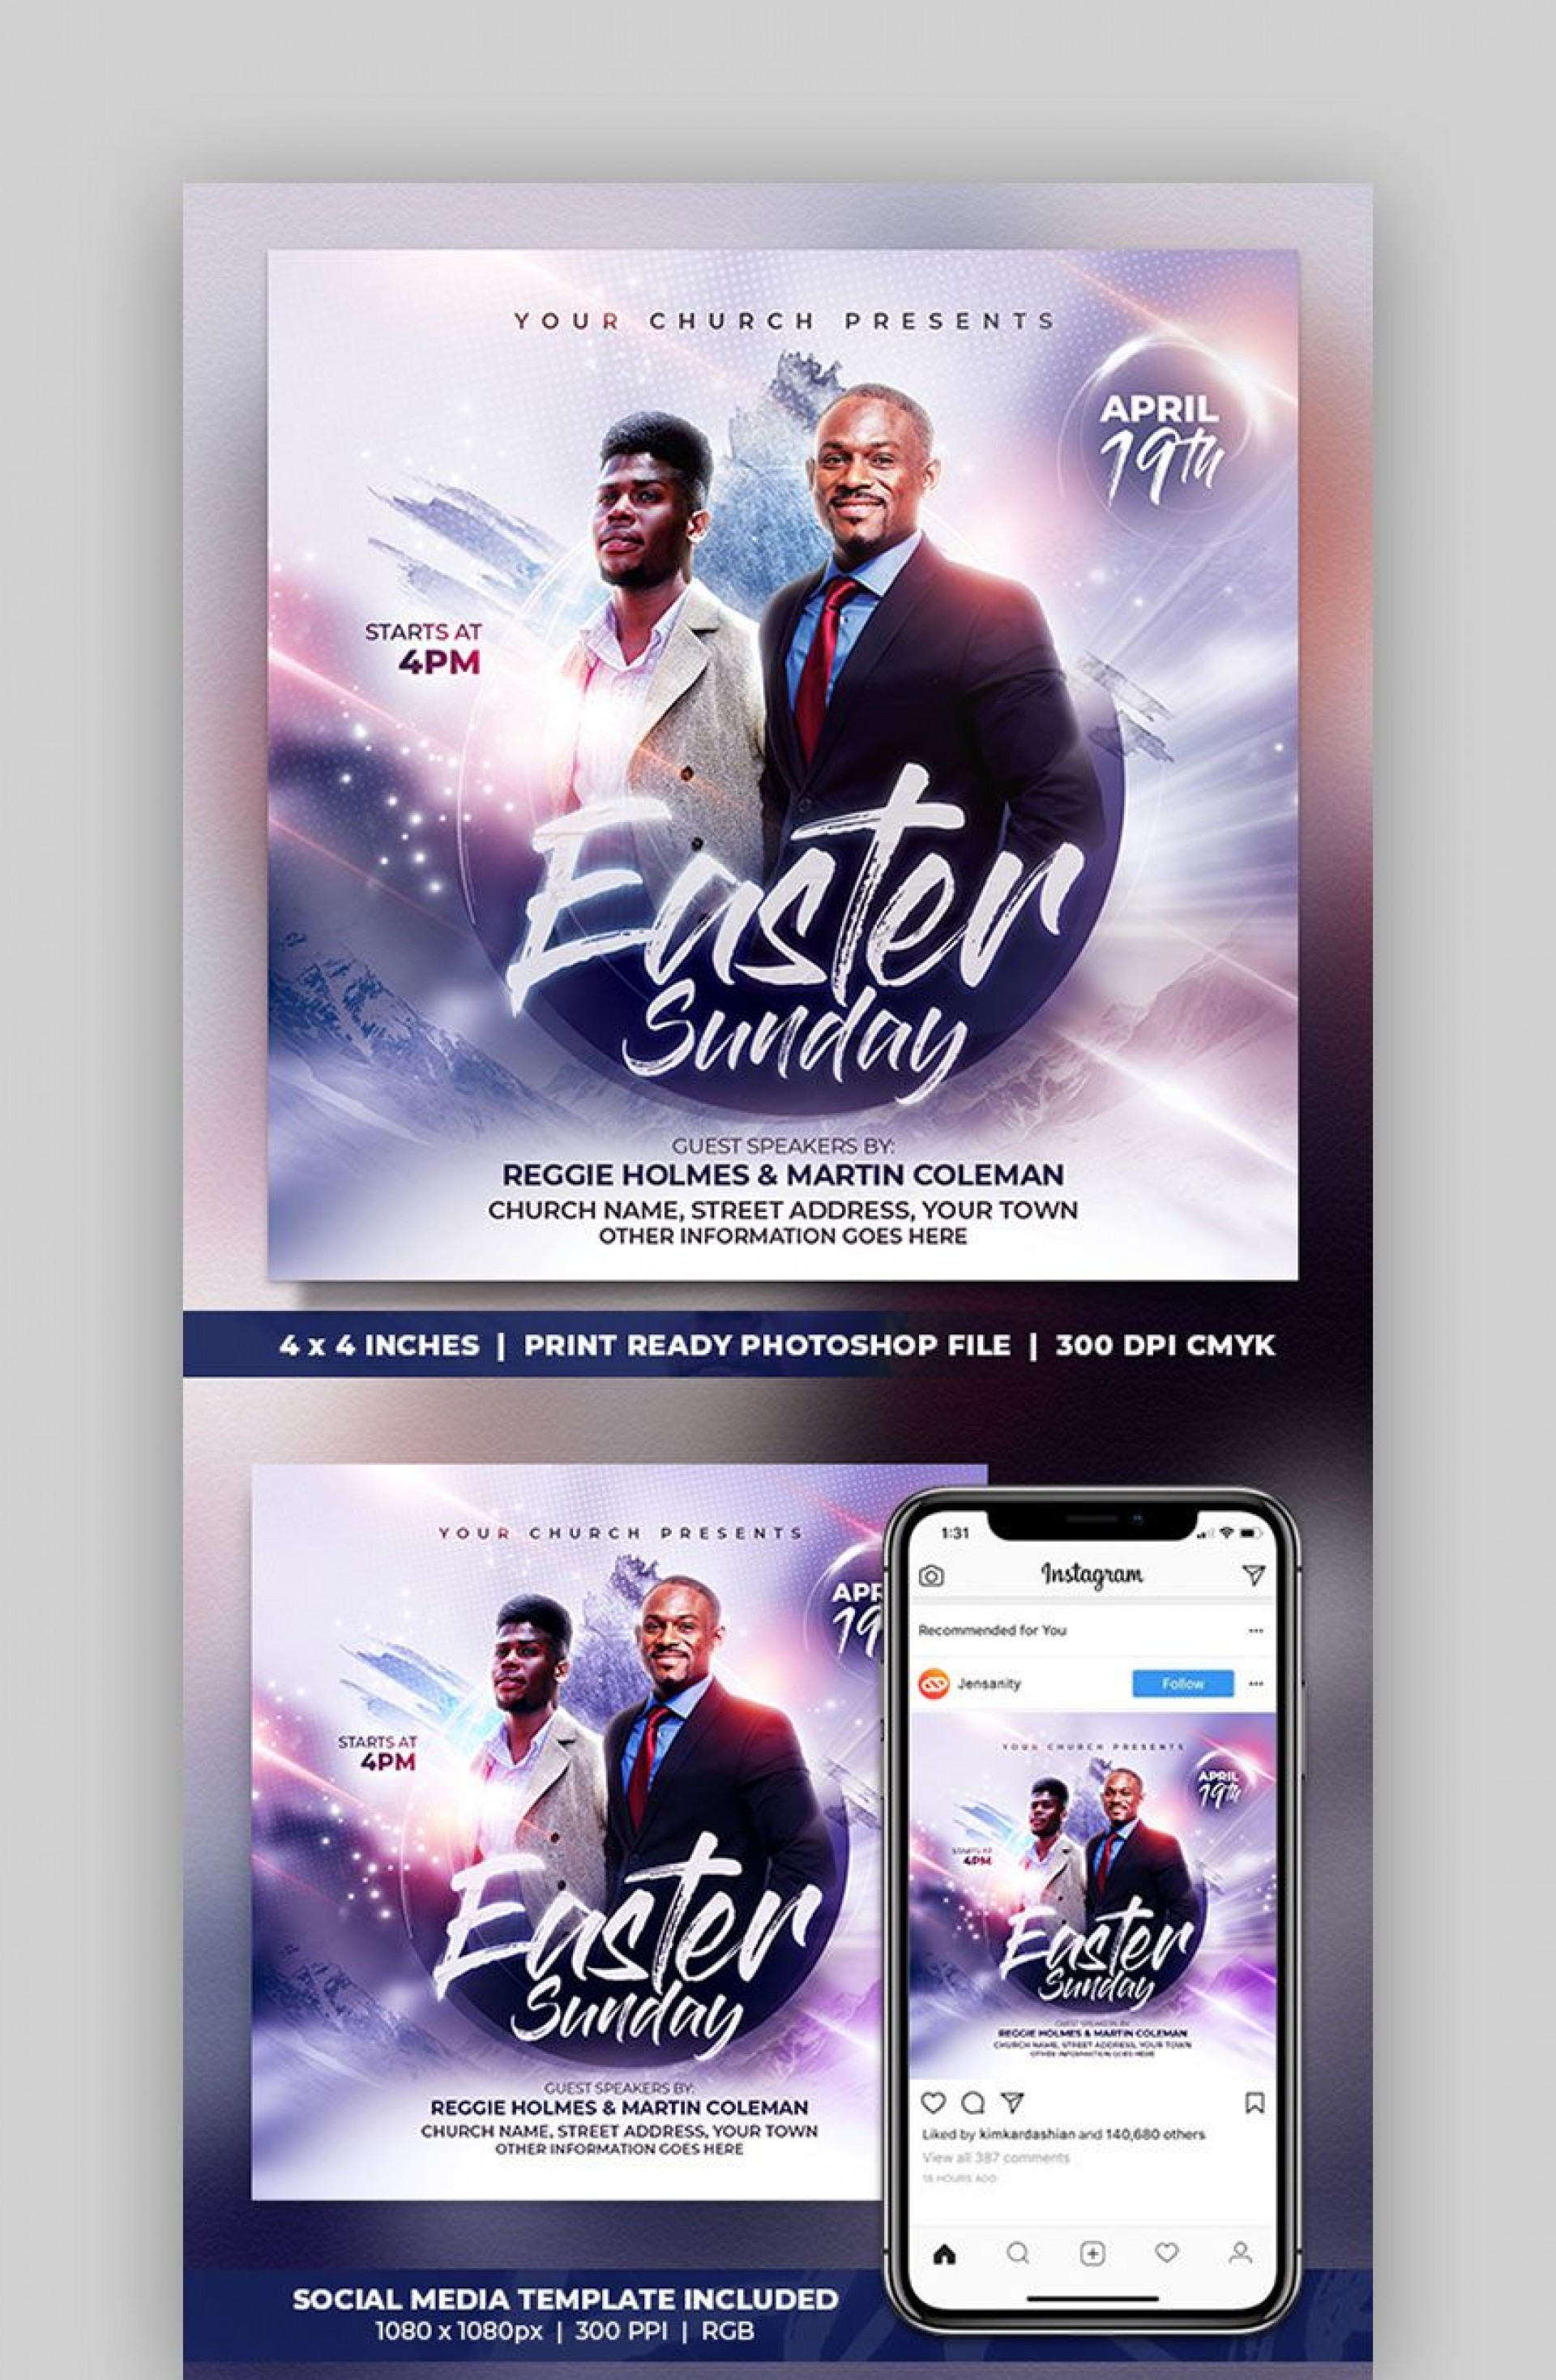 006 Striking Church Flyer Template Free Download Photo  Event Psd1920